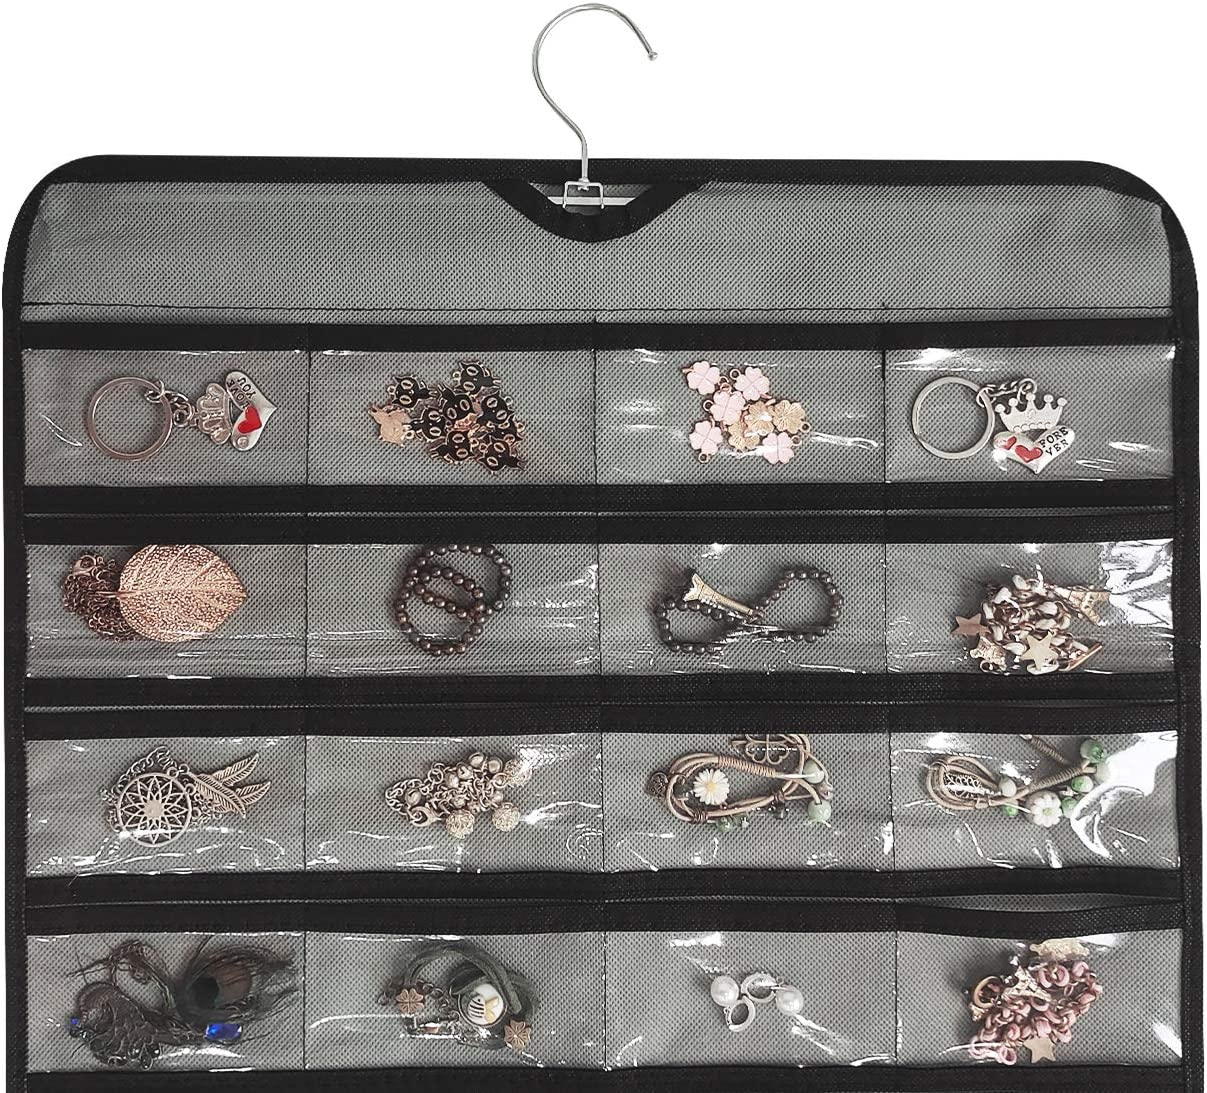 Gray BB Brotrade Hanging Jewelry Organizer,80 Pocket Double Sided Organizer,Necklace,Earring,Ring Holder for Jewelries